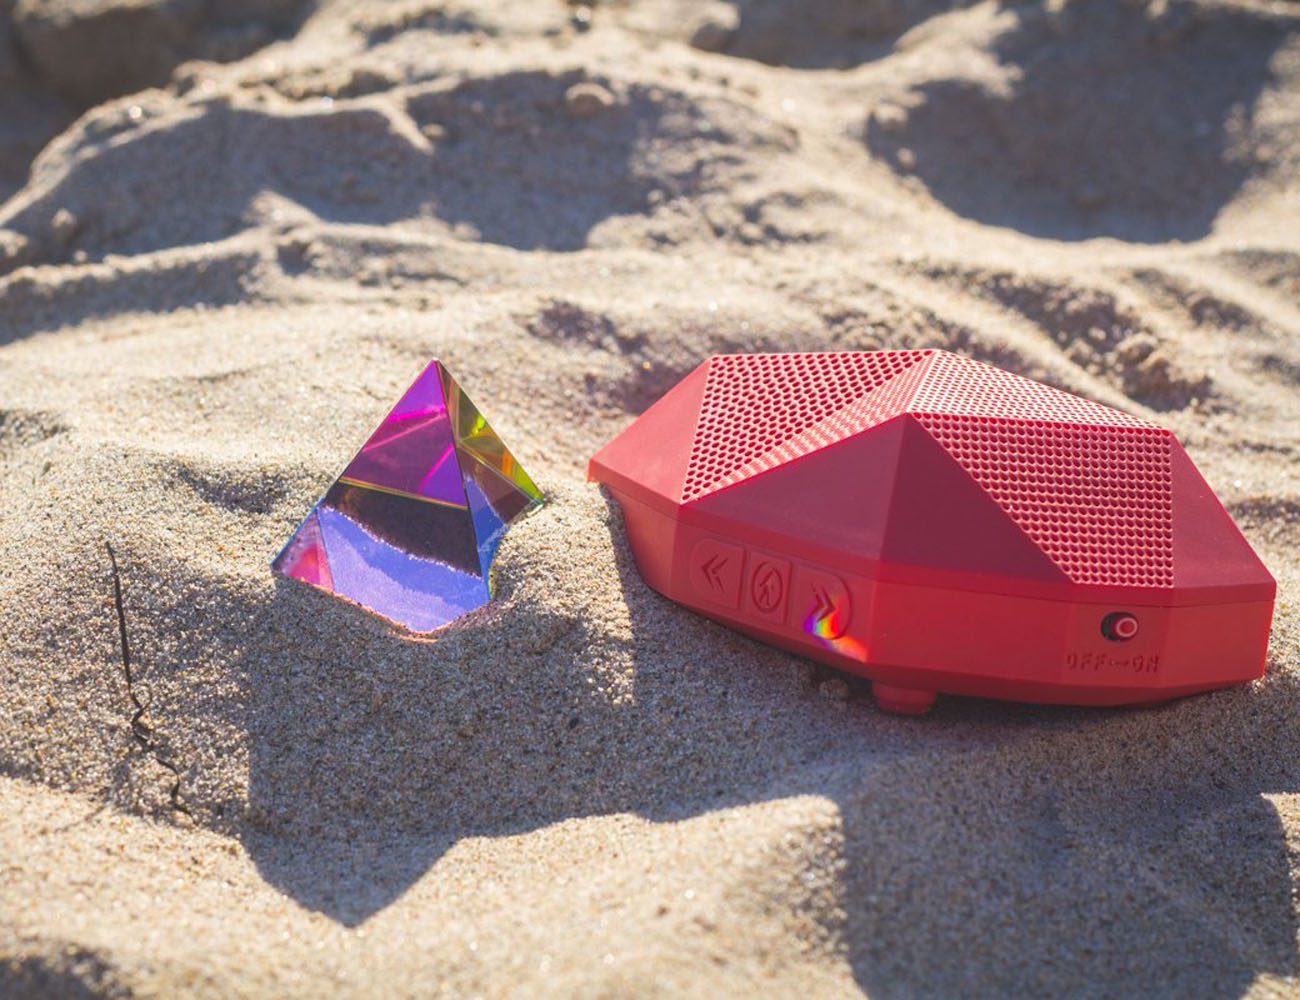 Turtle Shell Wireless Boombox by Outdoor Tech